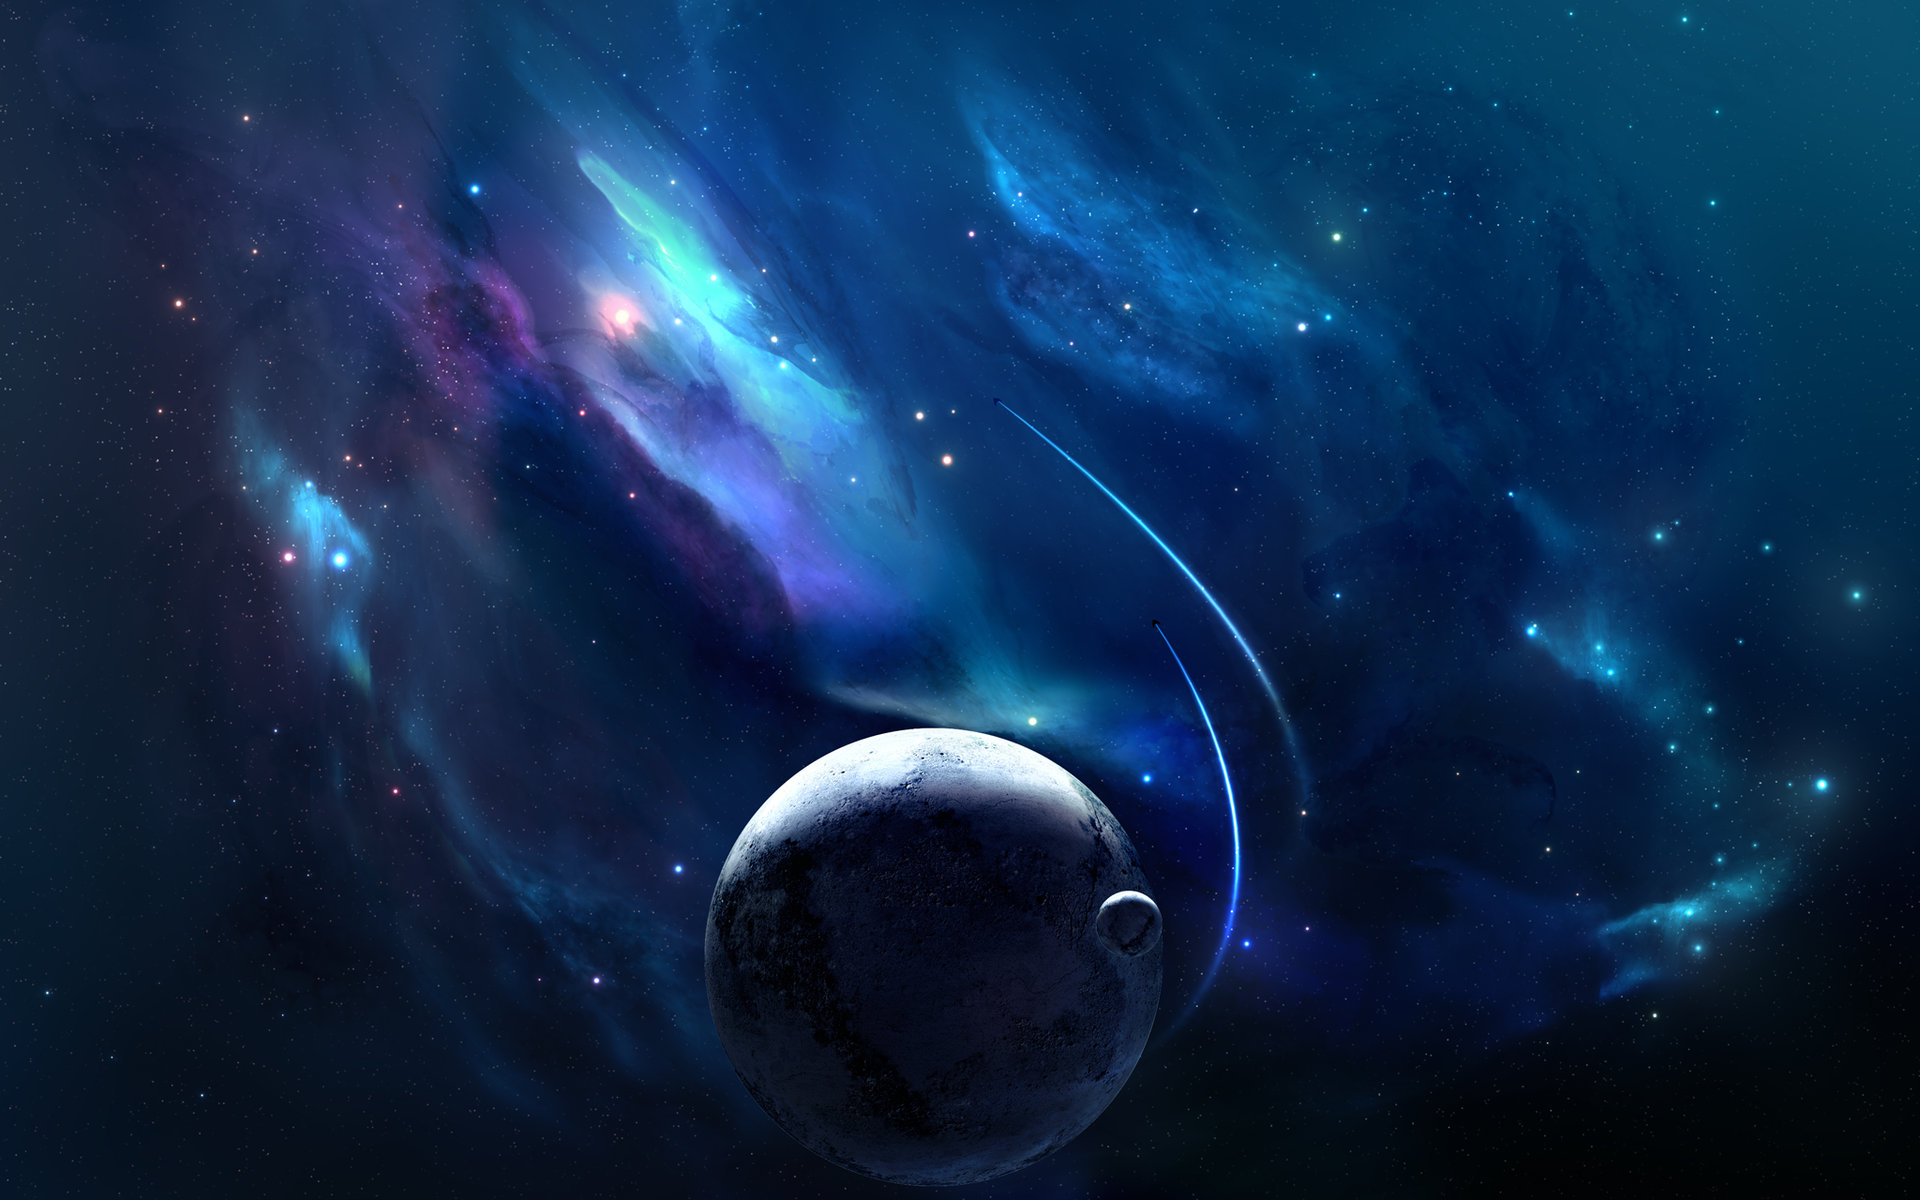 Dark Blue Planet Space HD Wallpaper 3134 HD Wallpaper 3D Desktop 1920x1200